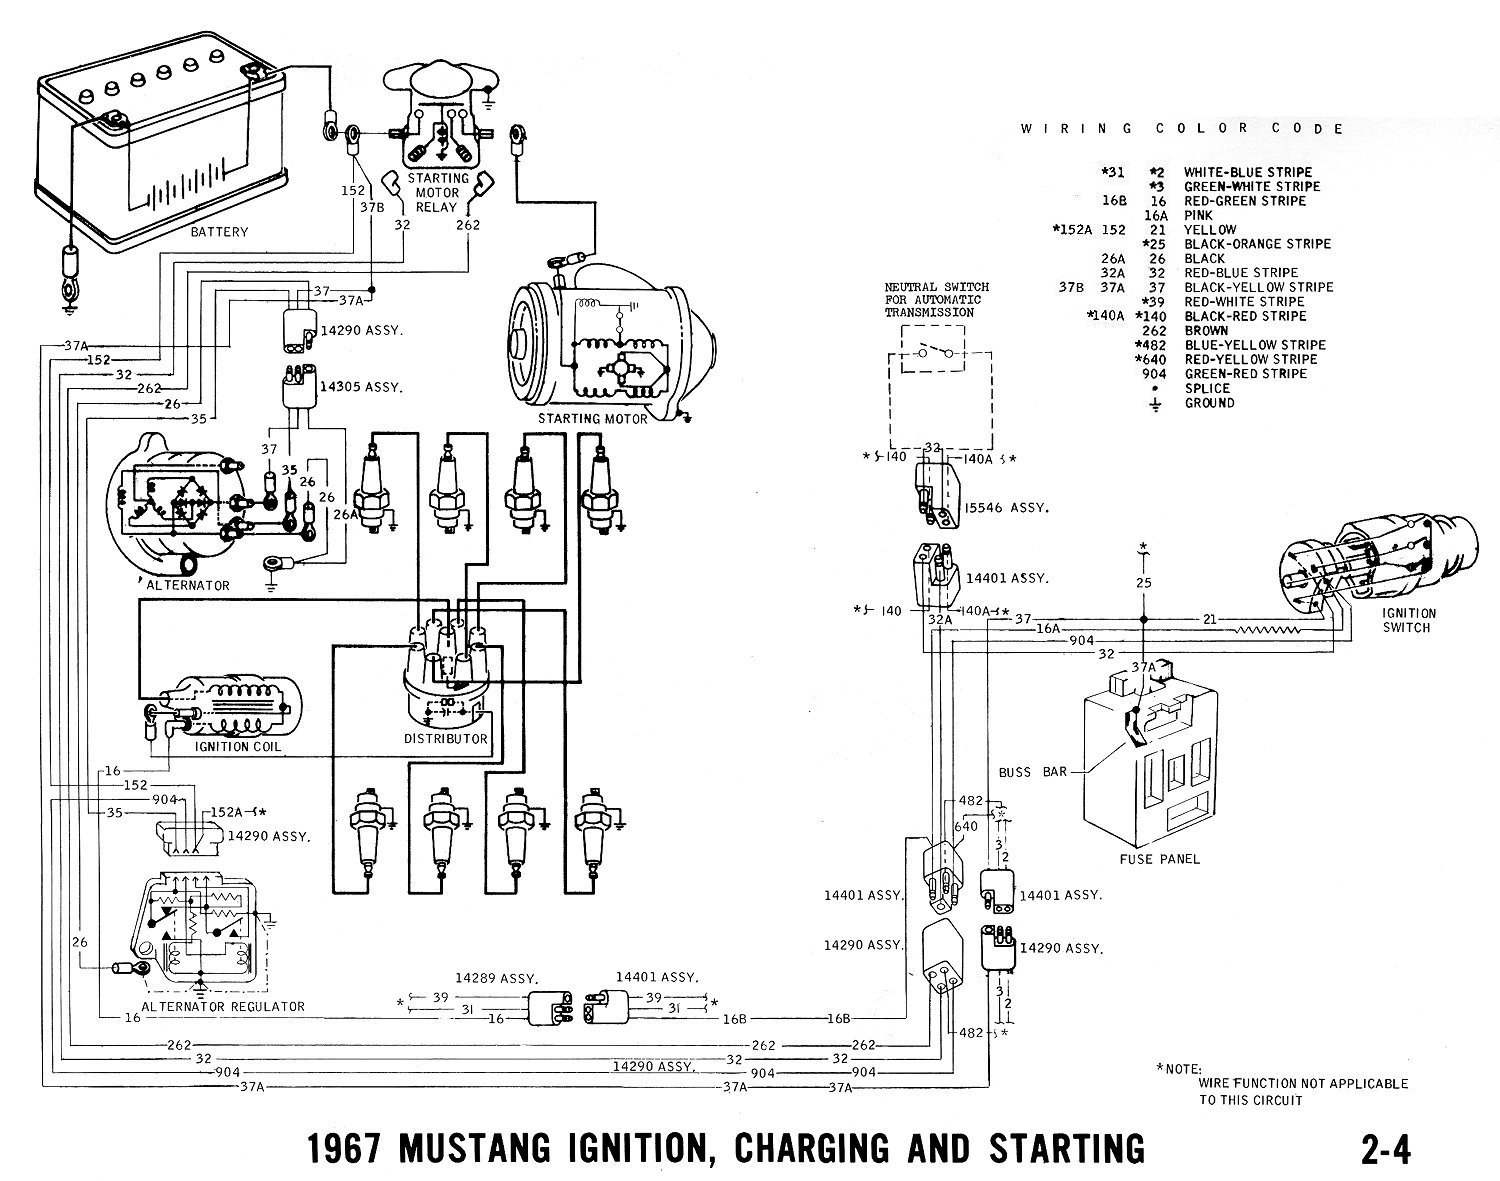 Onan Voltage Regulator Schematic http://www.allfordmustangs.com/forums/classic-tech/38301-voltage-regulator.html